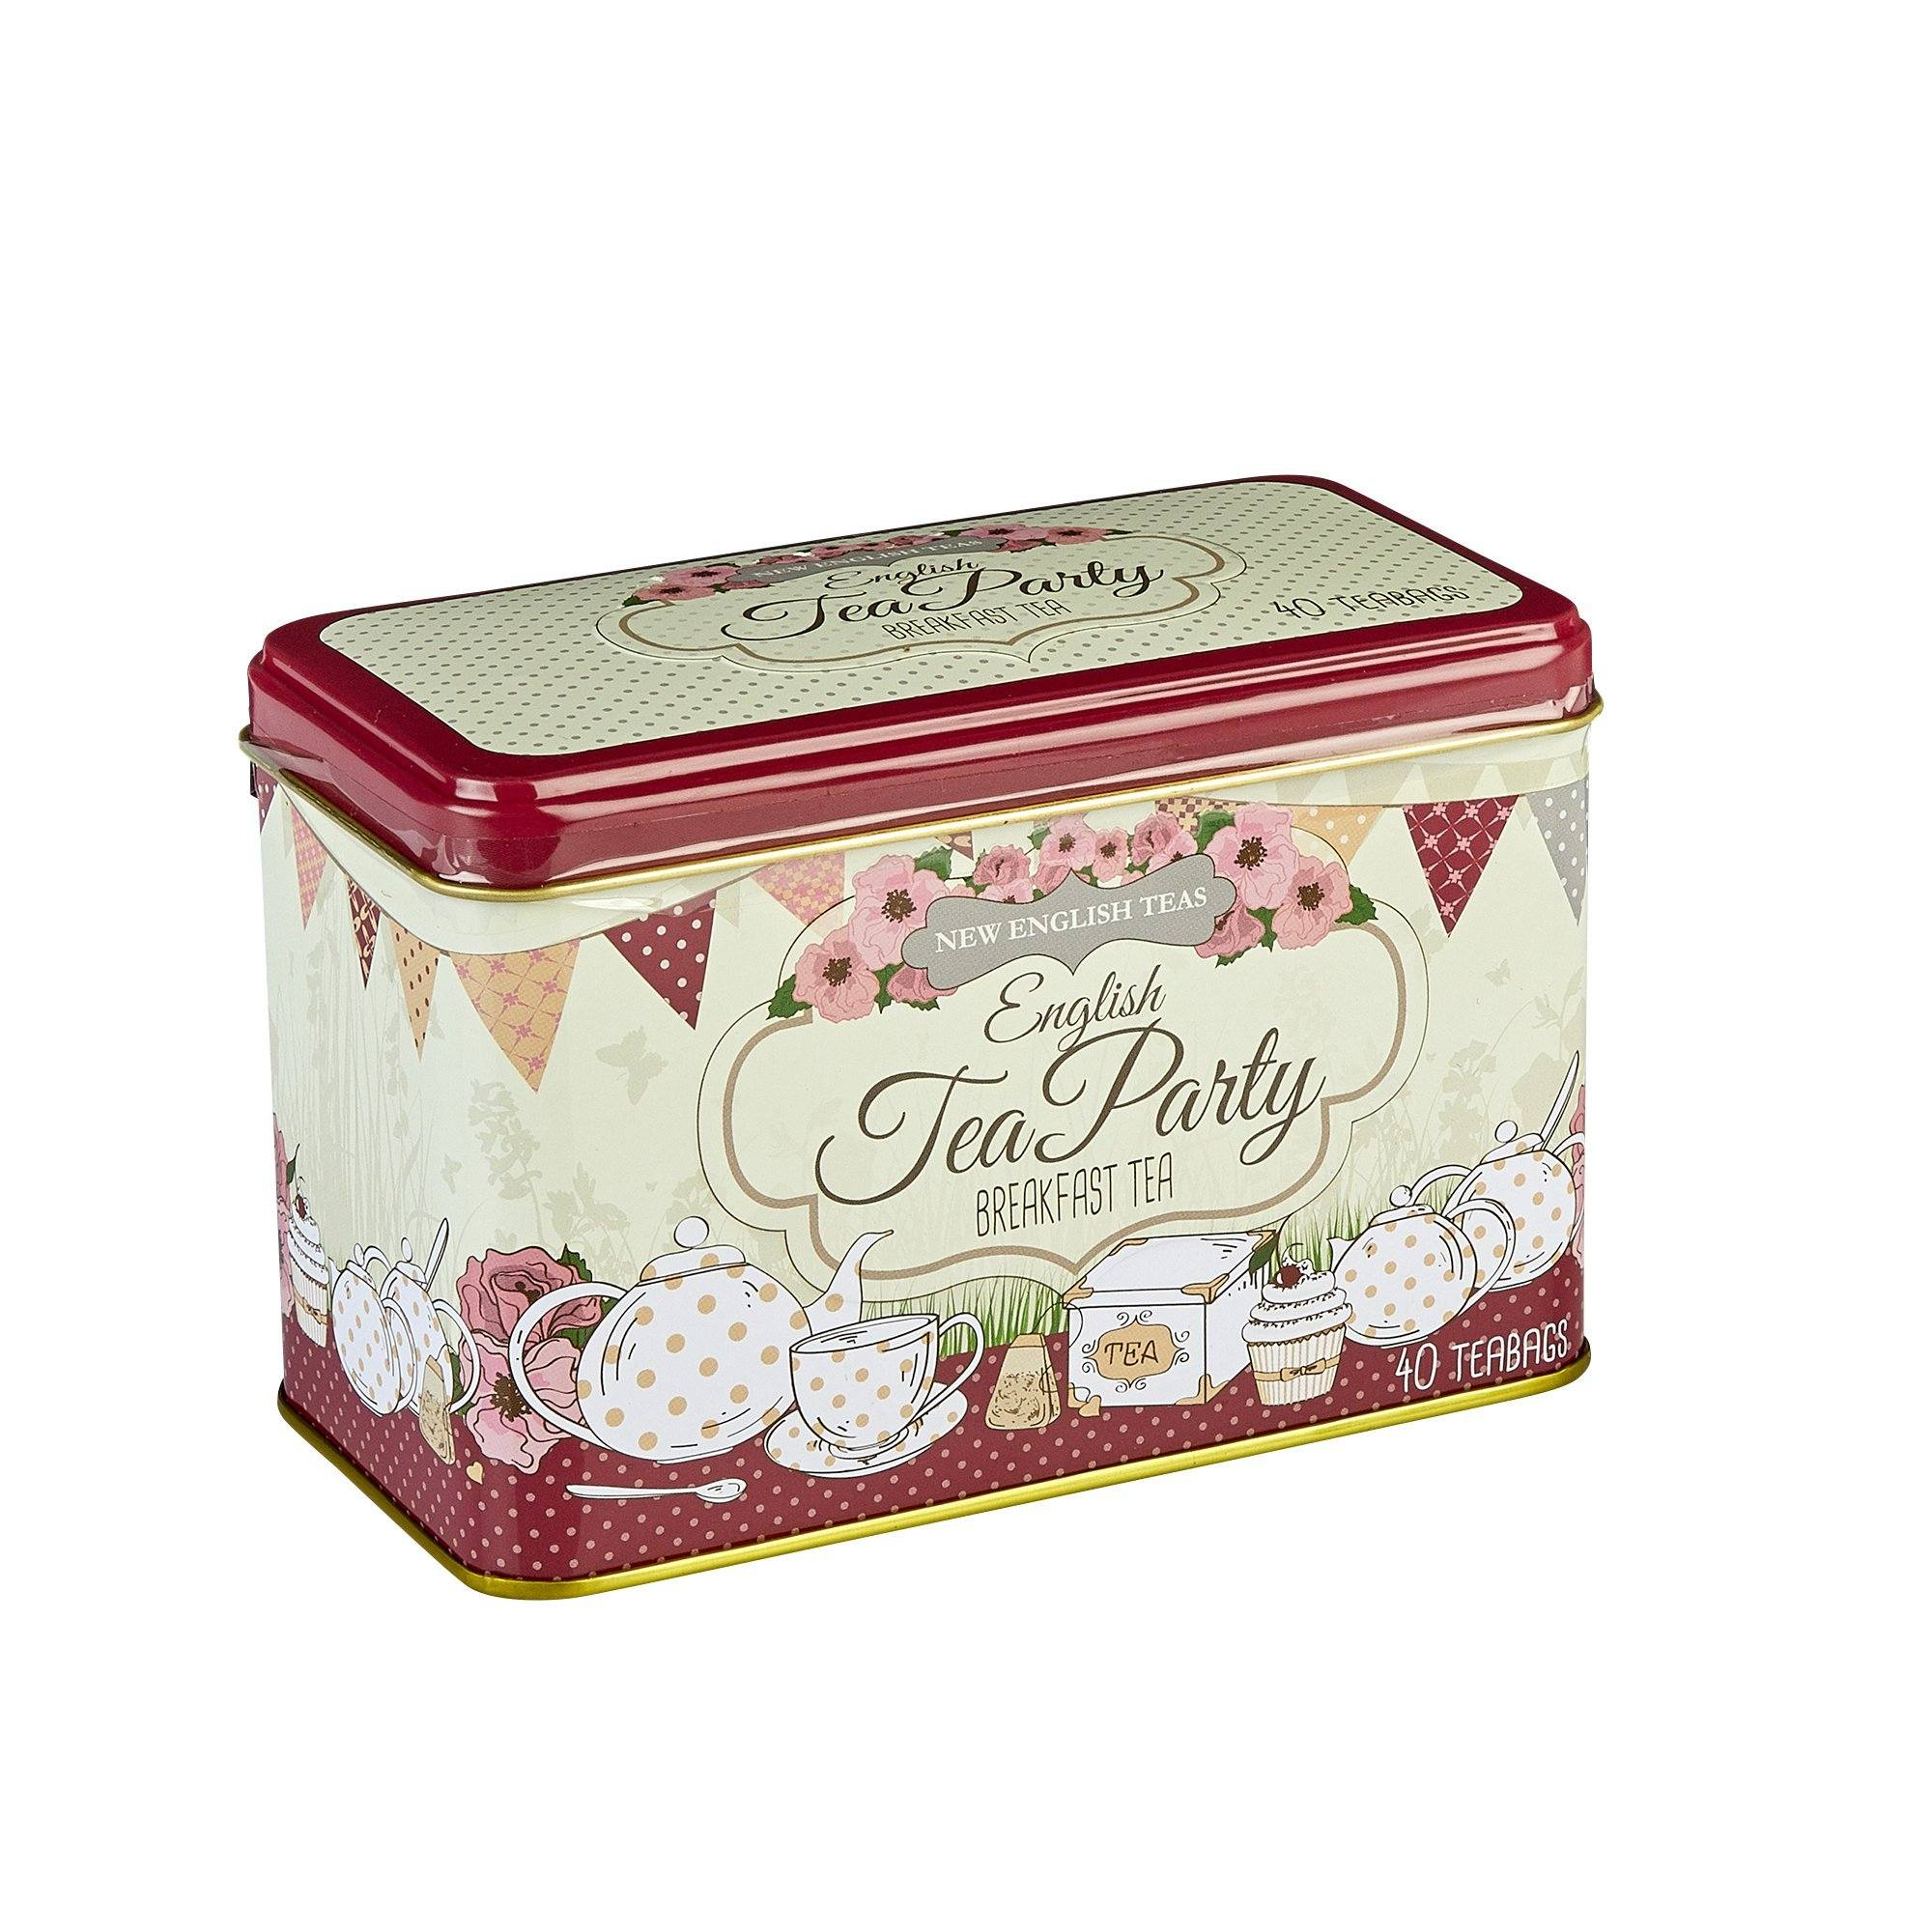 English Tea Party Breakfast Tea Tin 40 Teabags Black Tea New English Teas